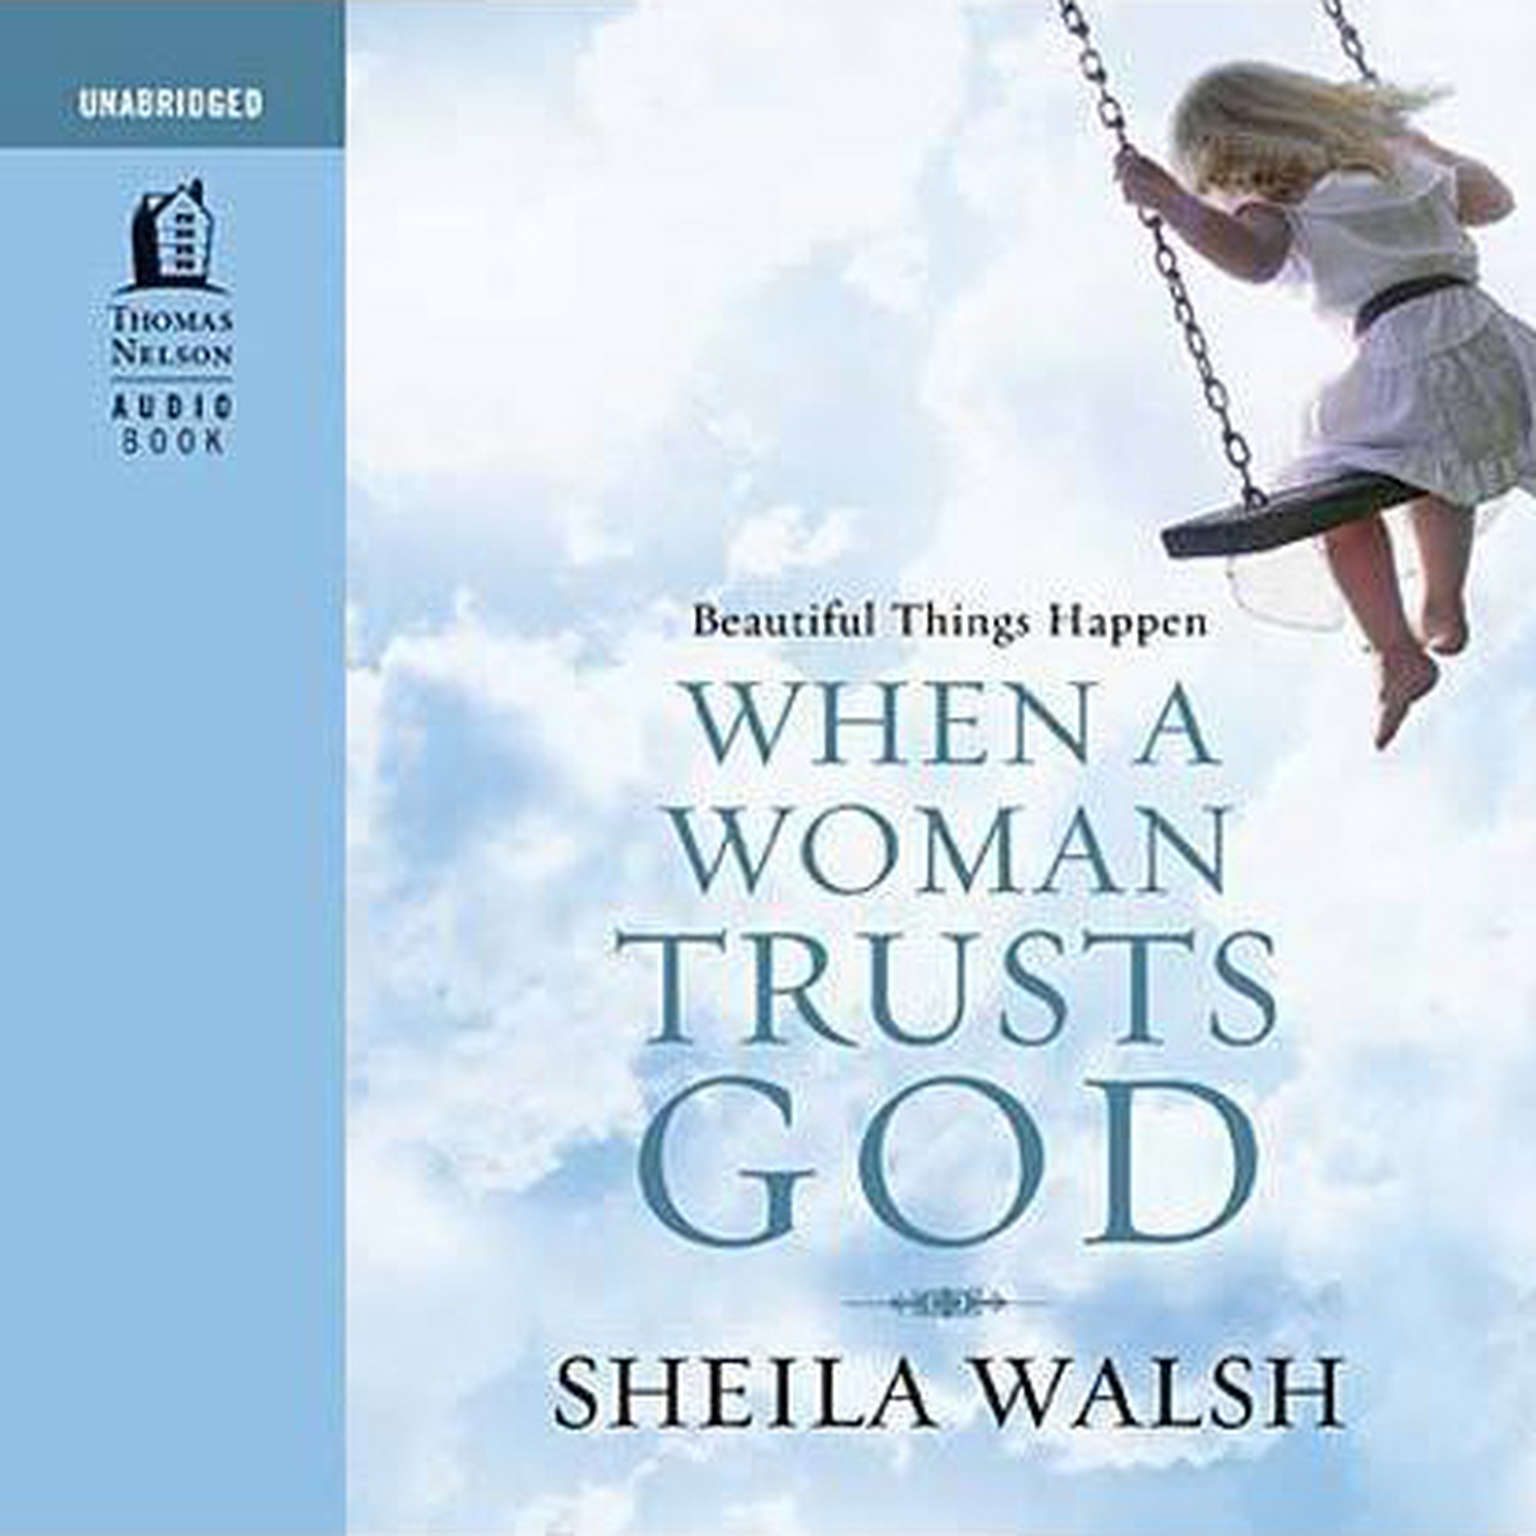 Printable Beautiful Things Happen When a Woman Trusts God Audiobook Cover Art